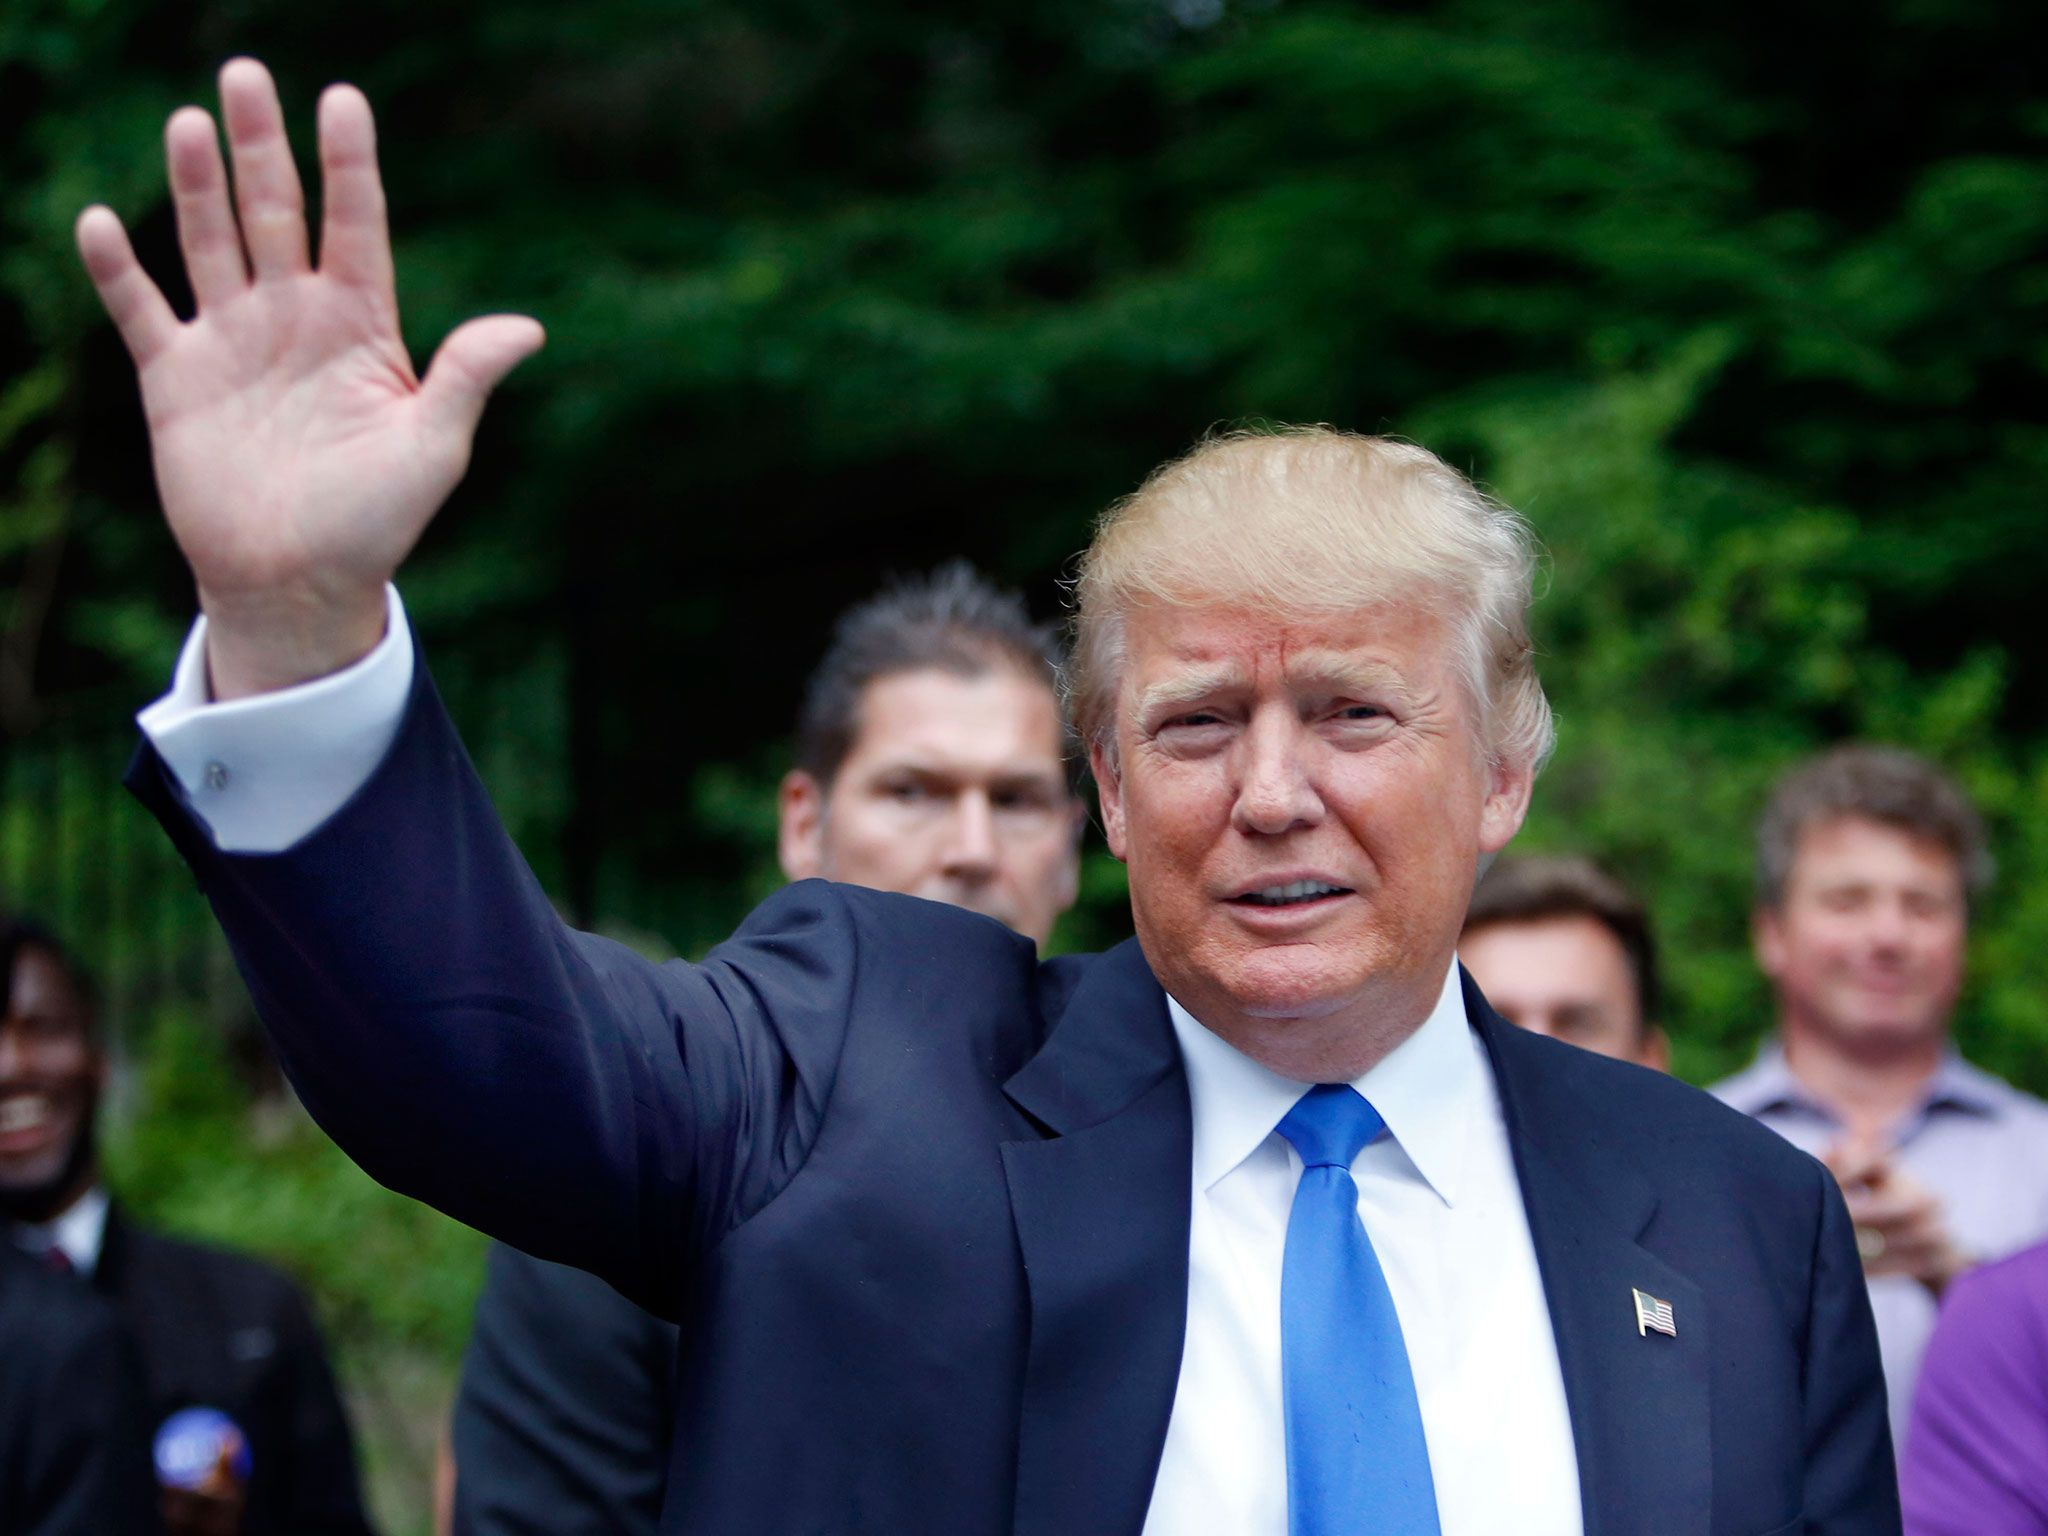 Donald Trump tops 40% in new national poll